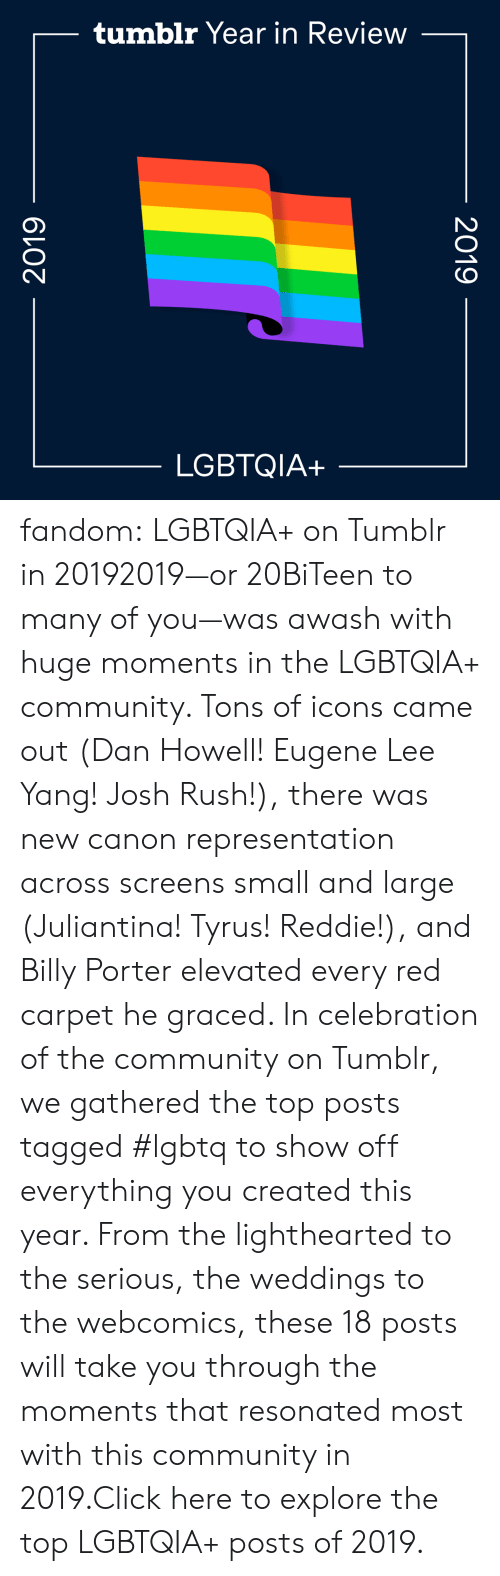 Click, Community, and Gif: tumblr Year in Review  LGBTQIA+  2019  2019 fandom:  LGBTQIA+ on Tumblr in 20192019—or 20BiTeen to many of you—was awash with huge moments in the LGBTQIA+ community. Tons of icons came out (Dan Howell! Eugene Lee Yang! Josh Rush!), there was new canon representation across screens small and large (Juliantina! Tyrus! Reddie!), and Billy Porter elevated every red carpet he graced. In celebration of the community on Tumblr, we gathered the top posts tagged #lgbtq to show off everything you created this year. From the lighthearted to the serious, the weddings to the webcomics, these 18 posts will take you through the moments that resonated most with this community in 2019.Click here to explore the top LGBTQIA+ posts of 2019.